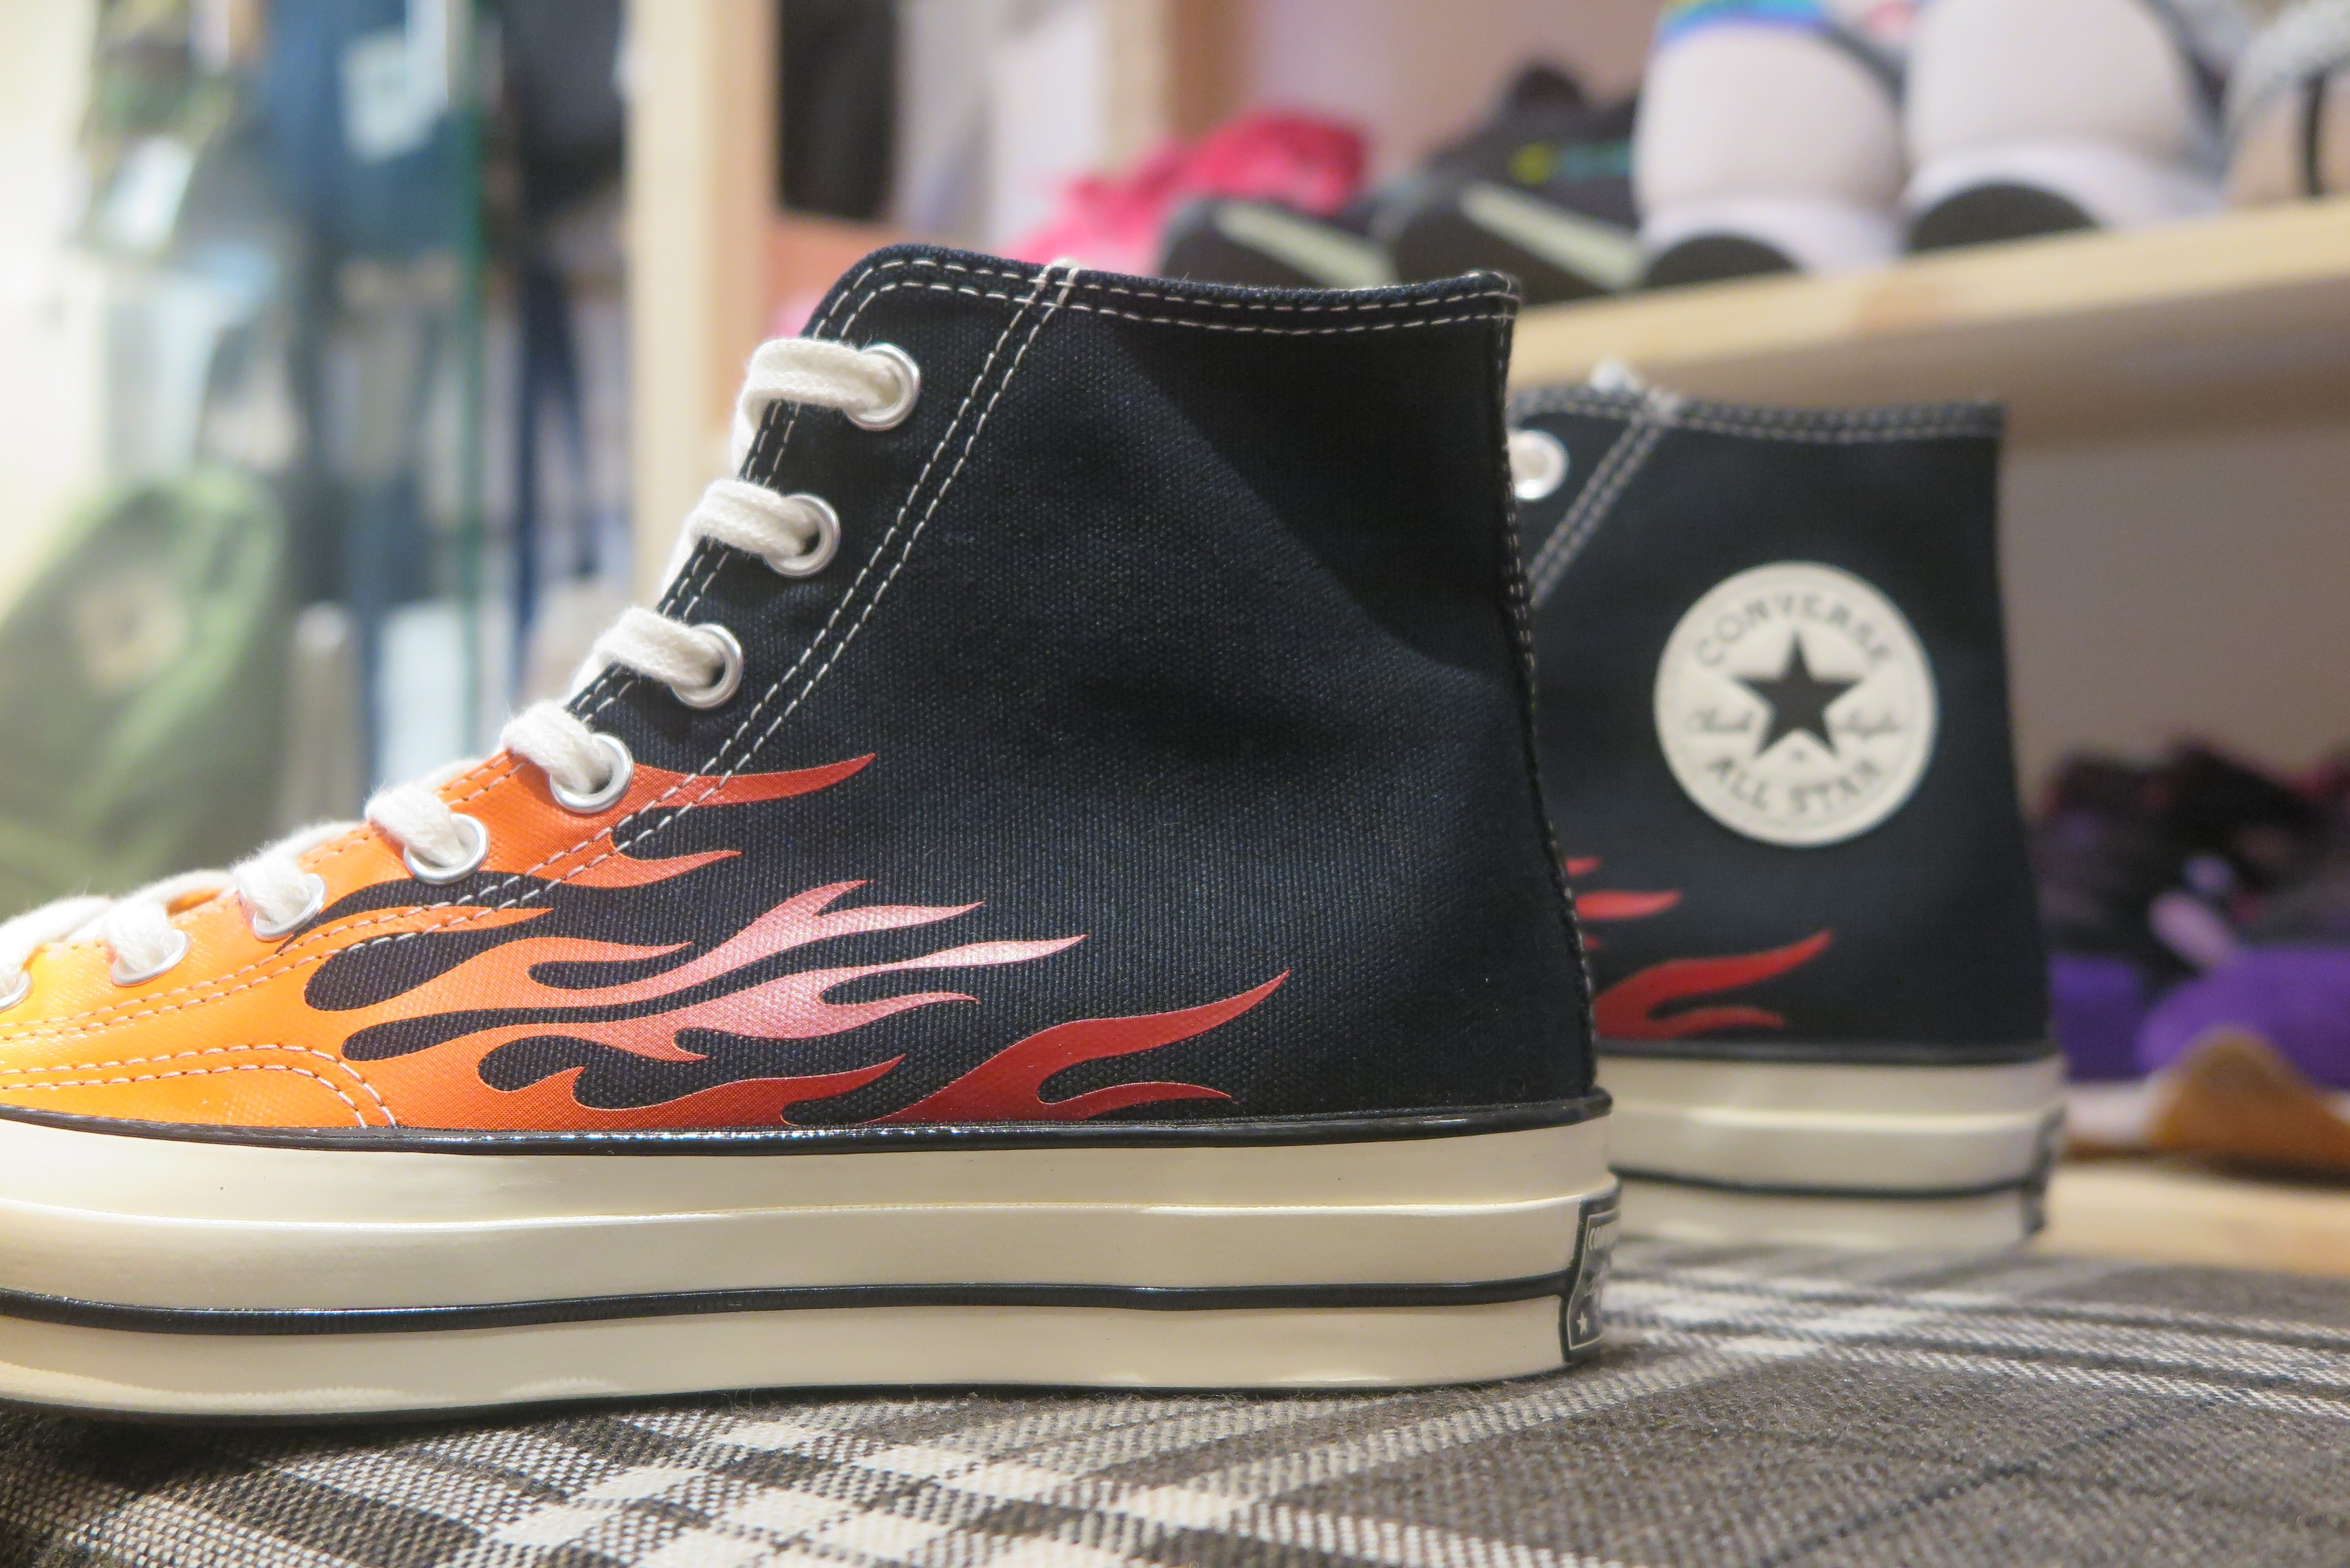 Converse Chuck 70 Archive Print High Top - Black/Enamel Red/Bold Mandarin #165024C-Preorder Item-Navy Selected Shop